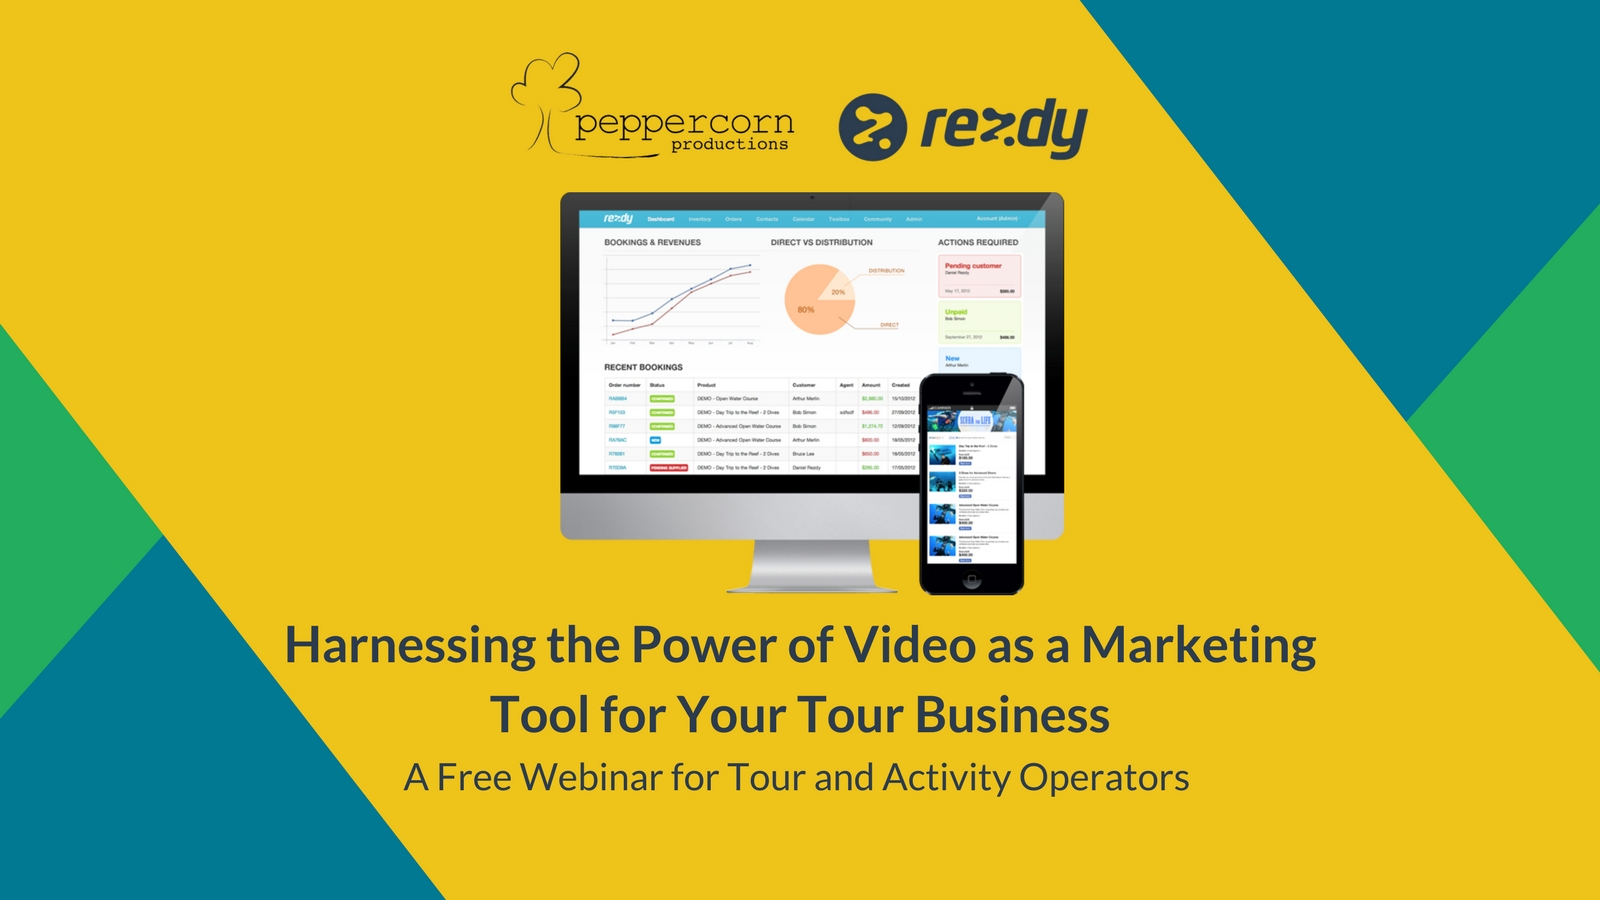 Harnessing the Power of Video as a Marketing Tool for Your Tour